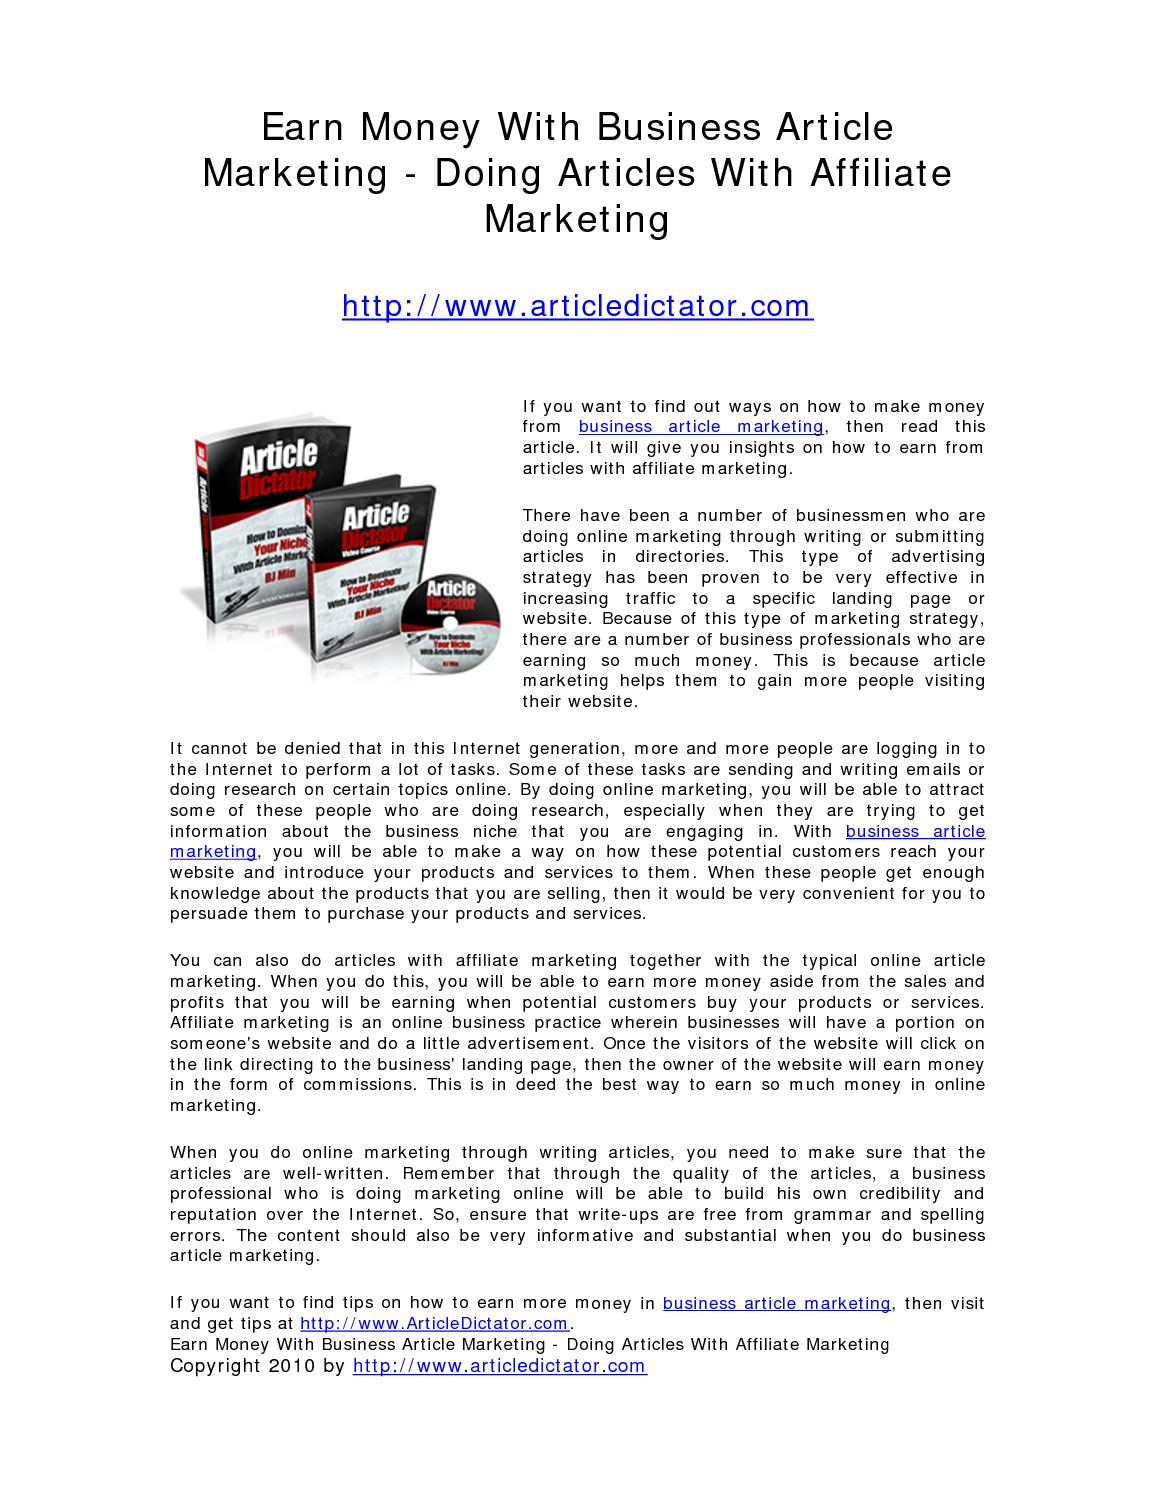 Article Marketing – How To Increase Website Traffic To Make Money Online